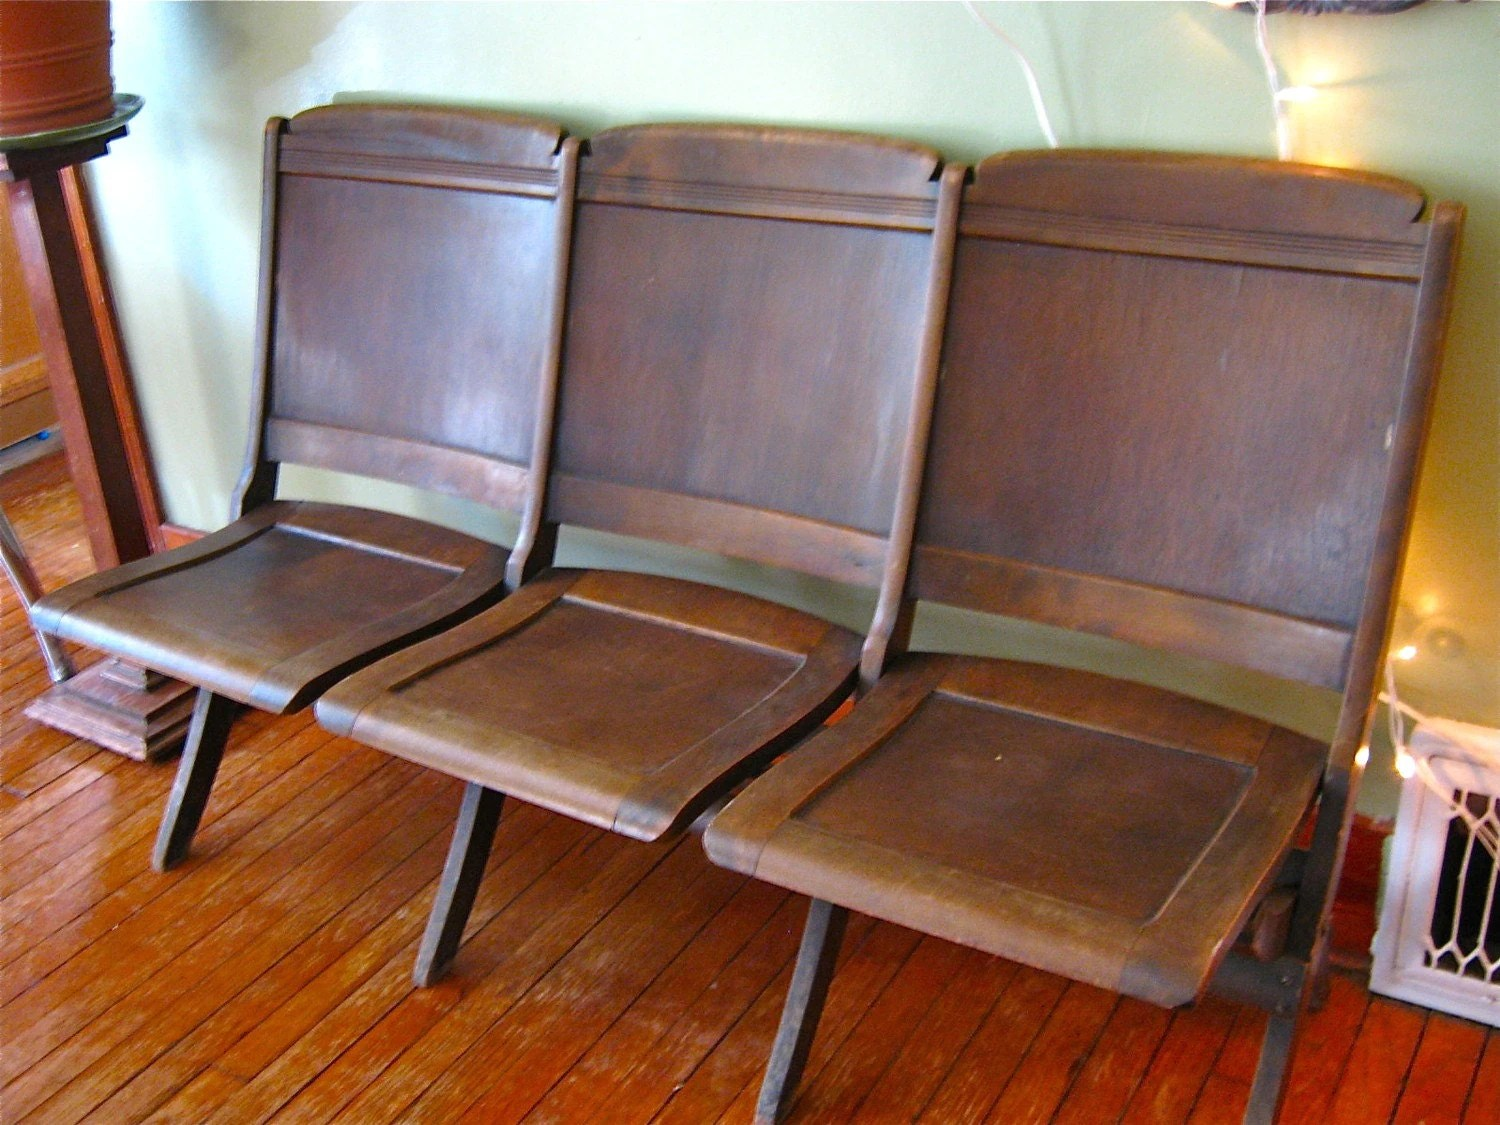 Movie Theater Chairs Mark Down Vintage Antique Folding Wooden Movie Theater Seats